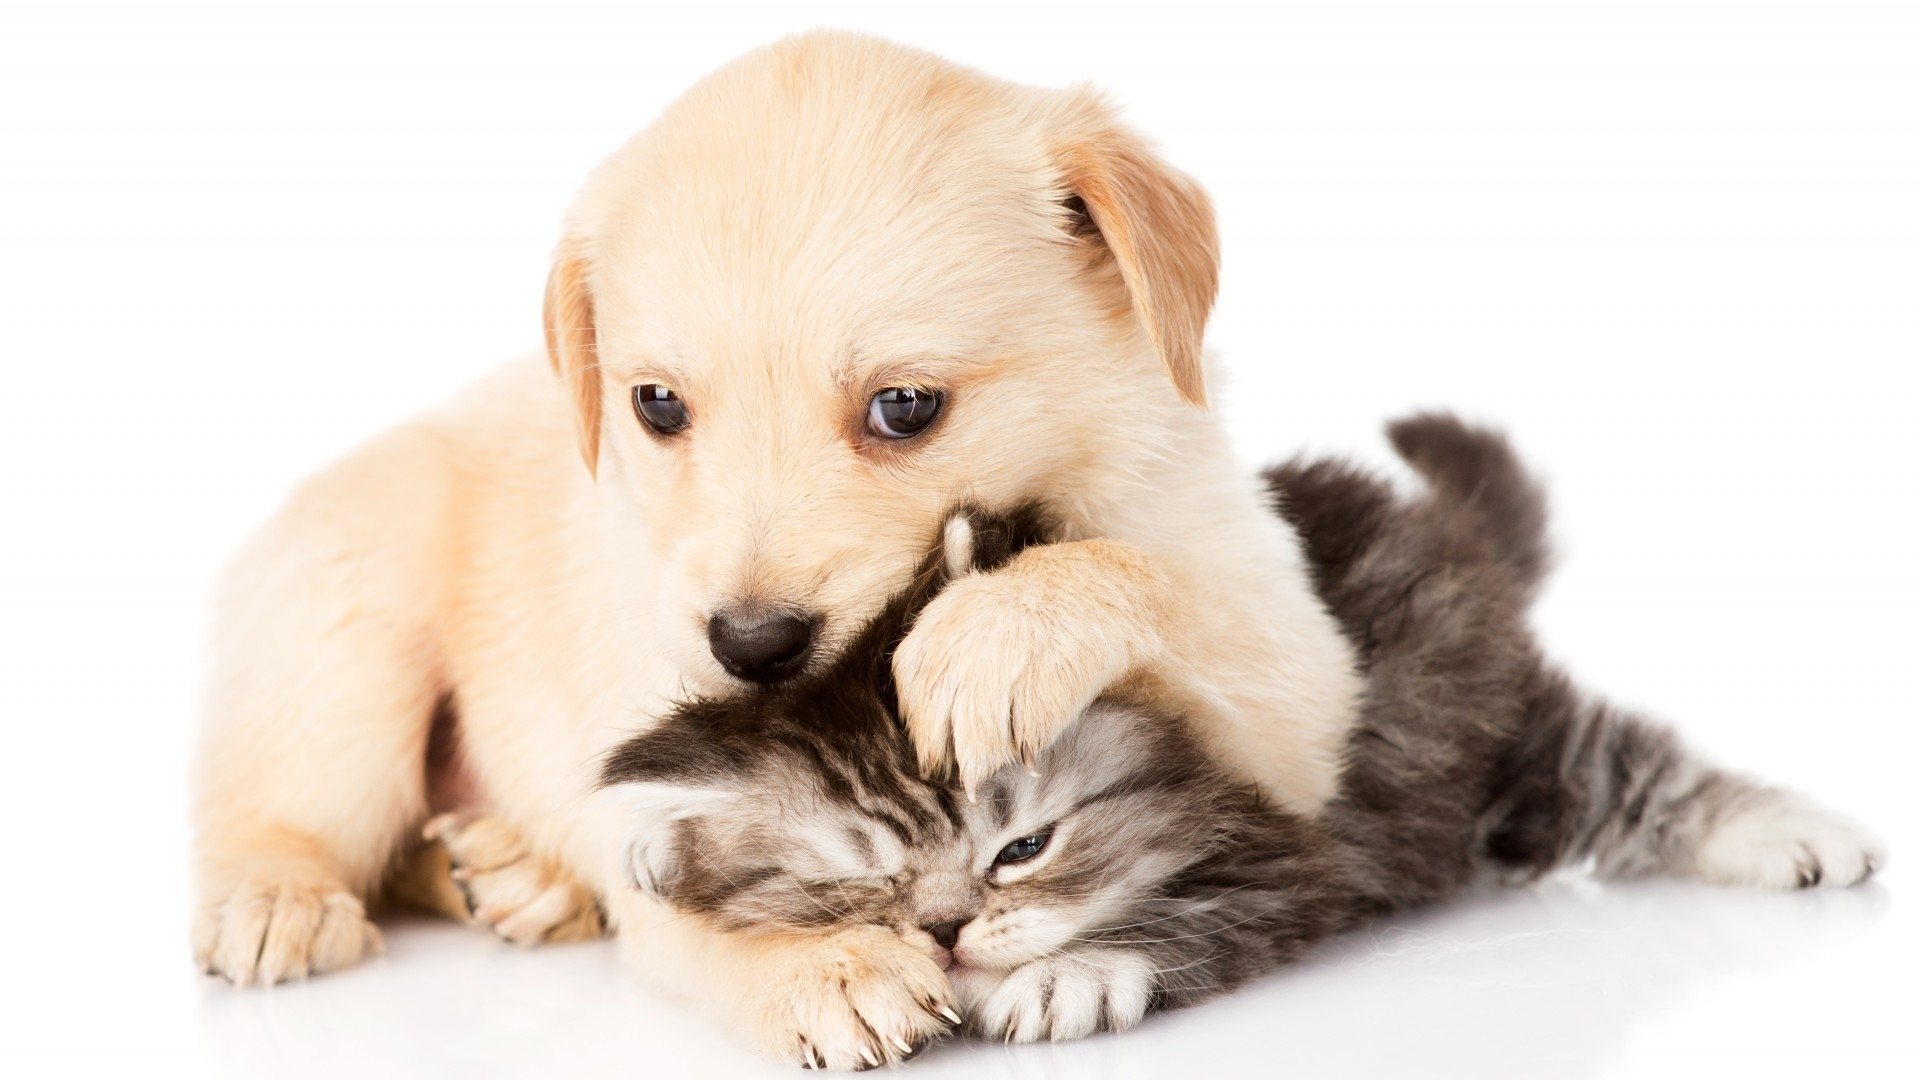 kittens and puppies wallpapers group (74+)